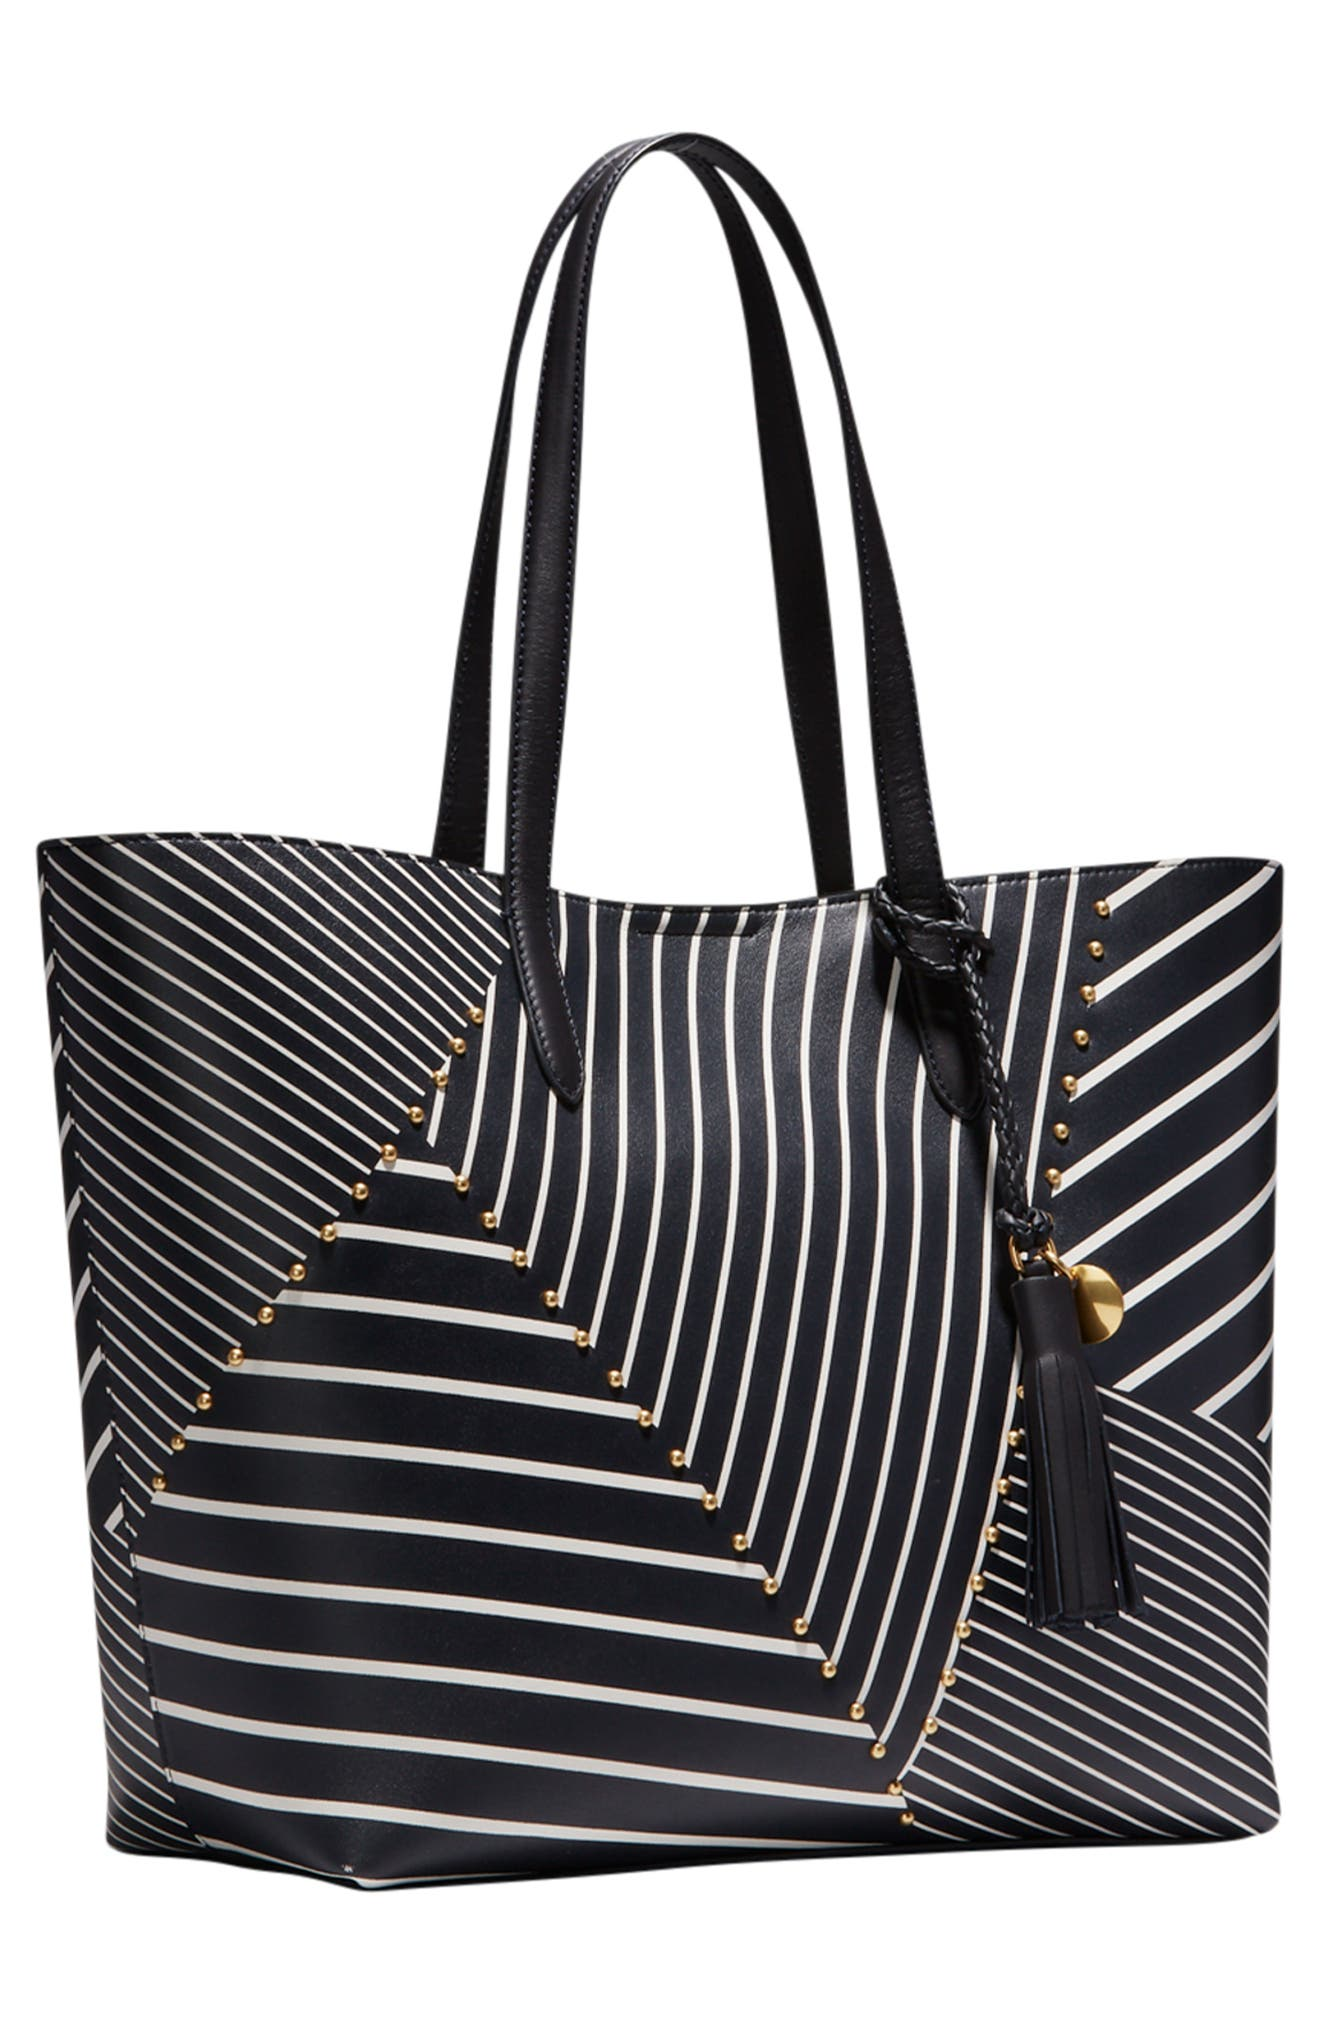 Payson Print Tote,                             Alternate thumbnail 6, color,                             001